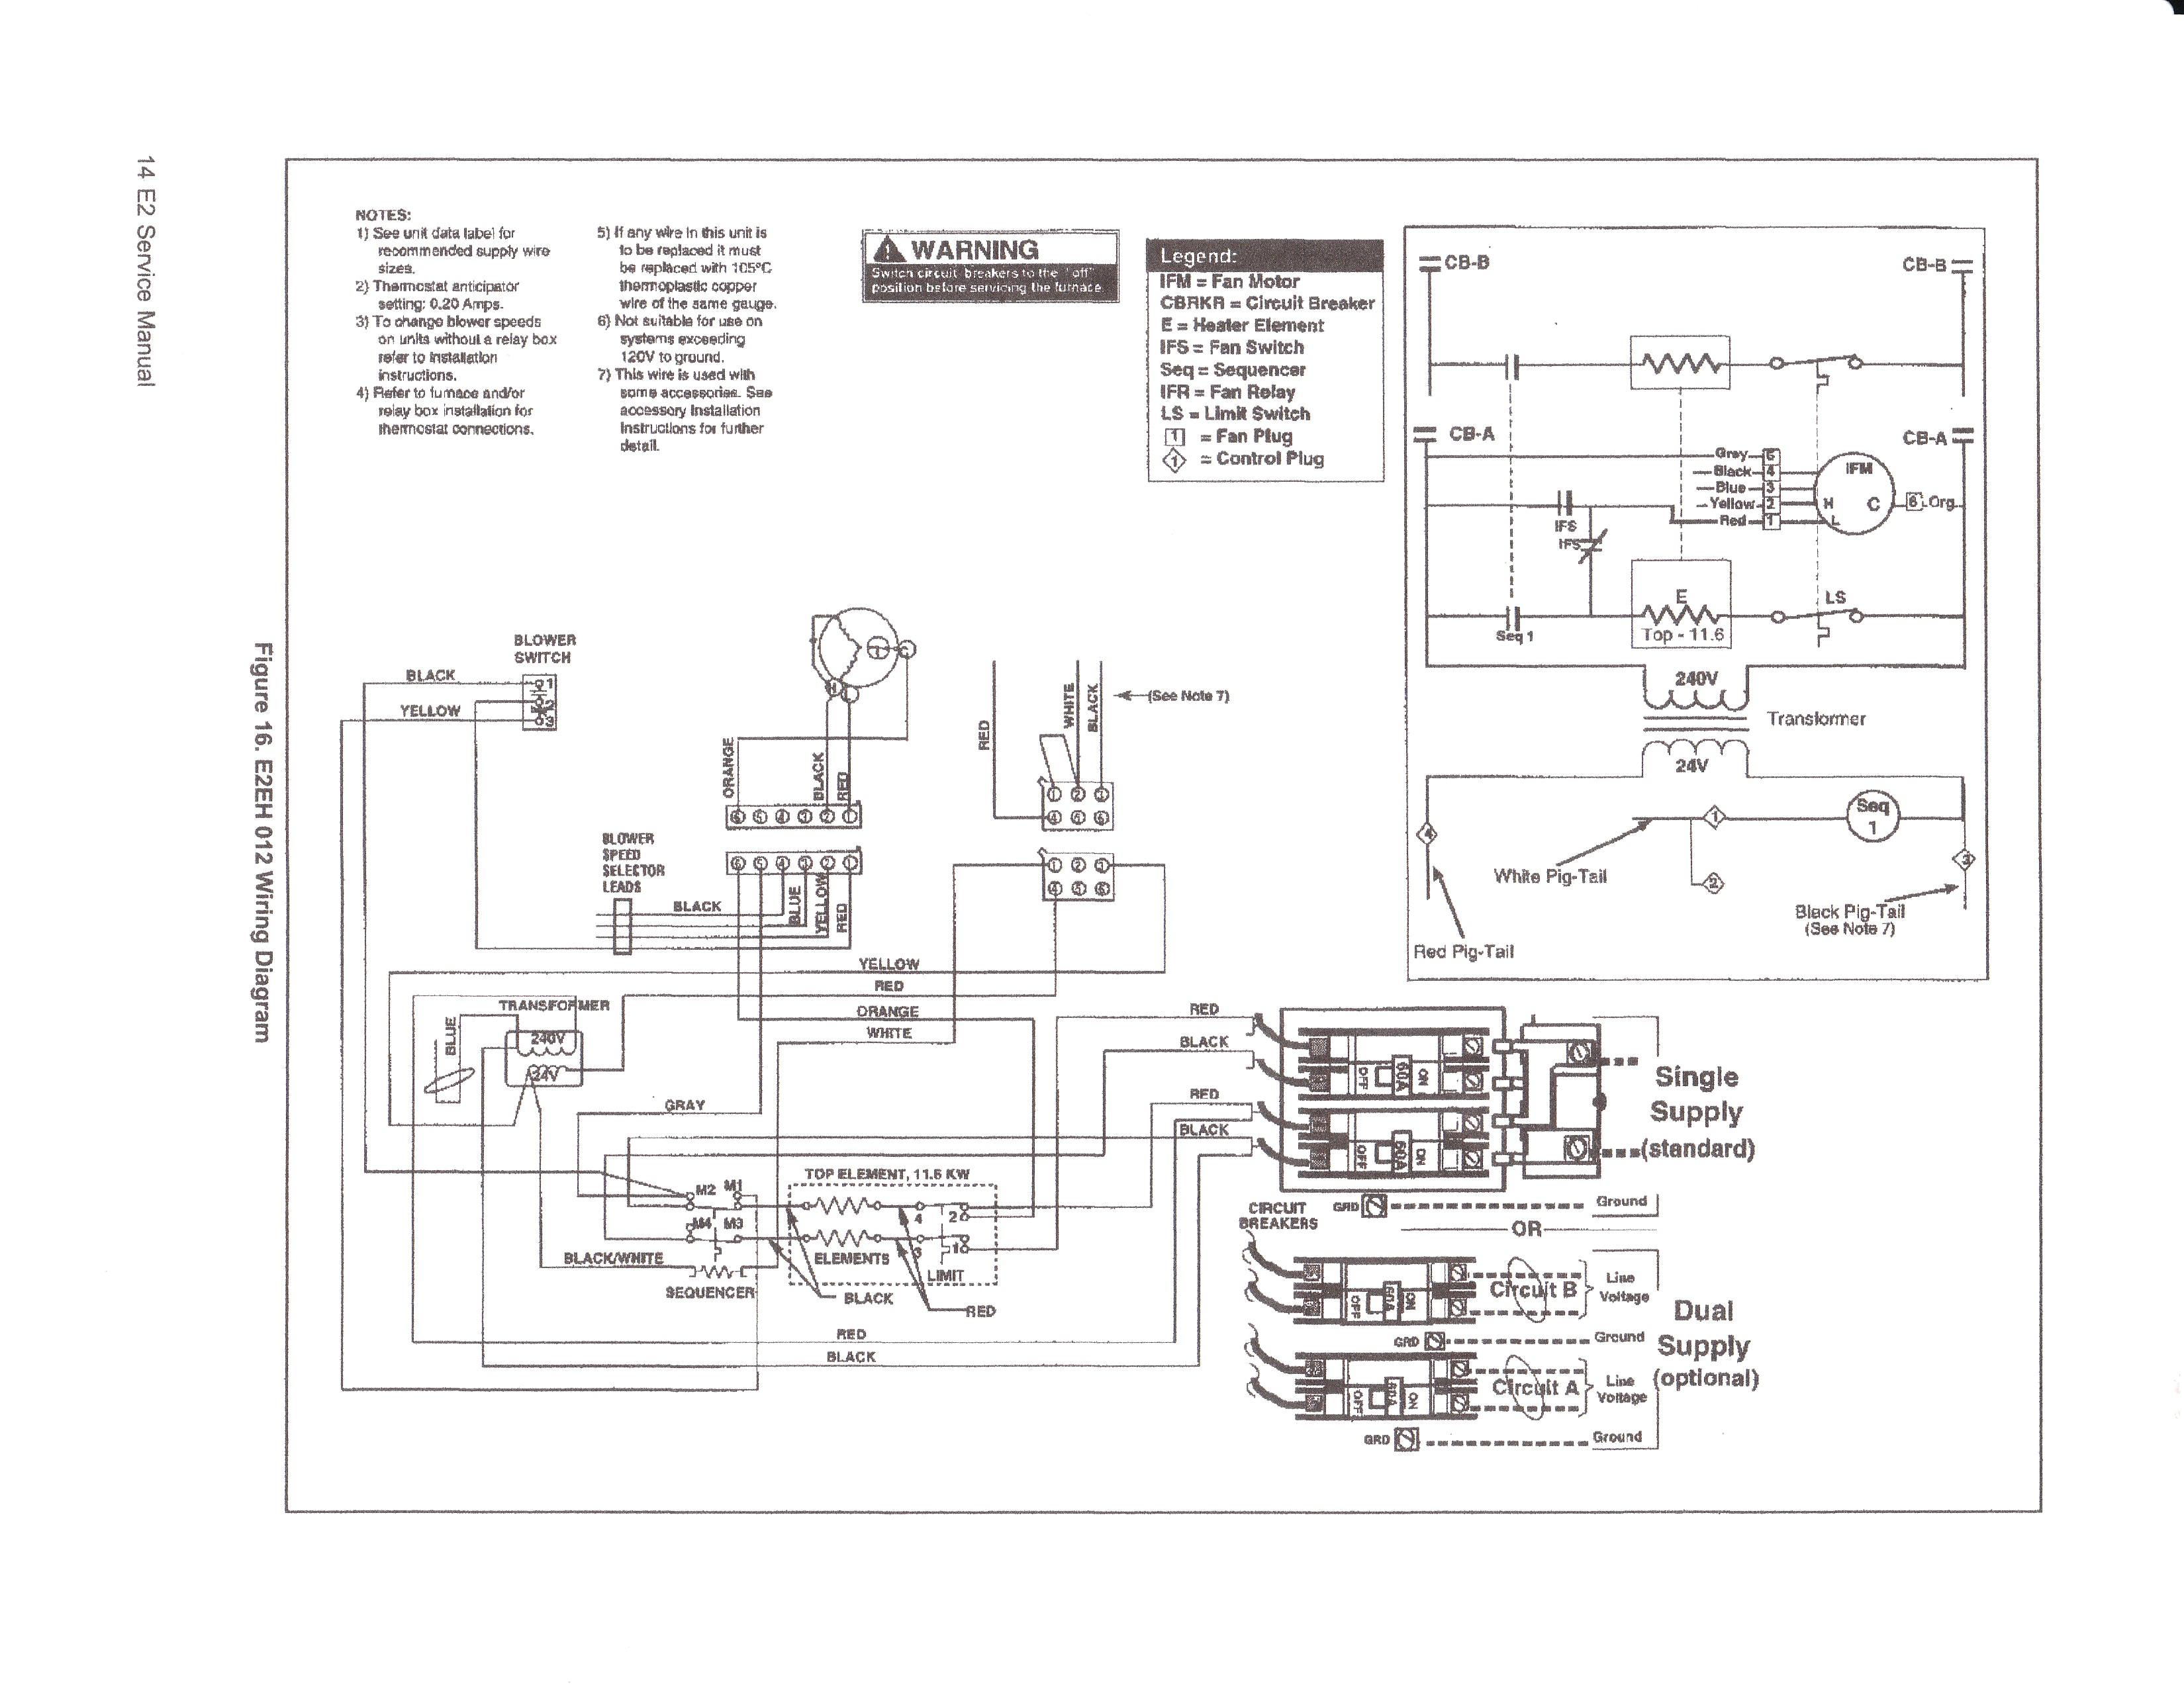 intertherm ac unit wiring diagram Collection-Intertherm Electric Furnace Wiring Diagram Webtor Best Solutions In 11-e